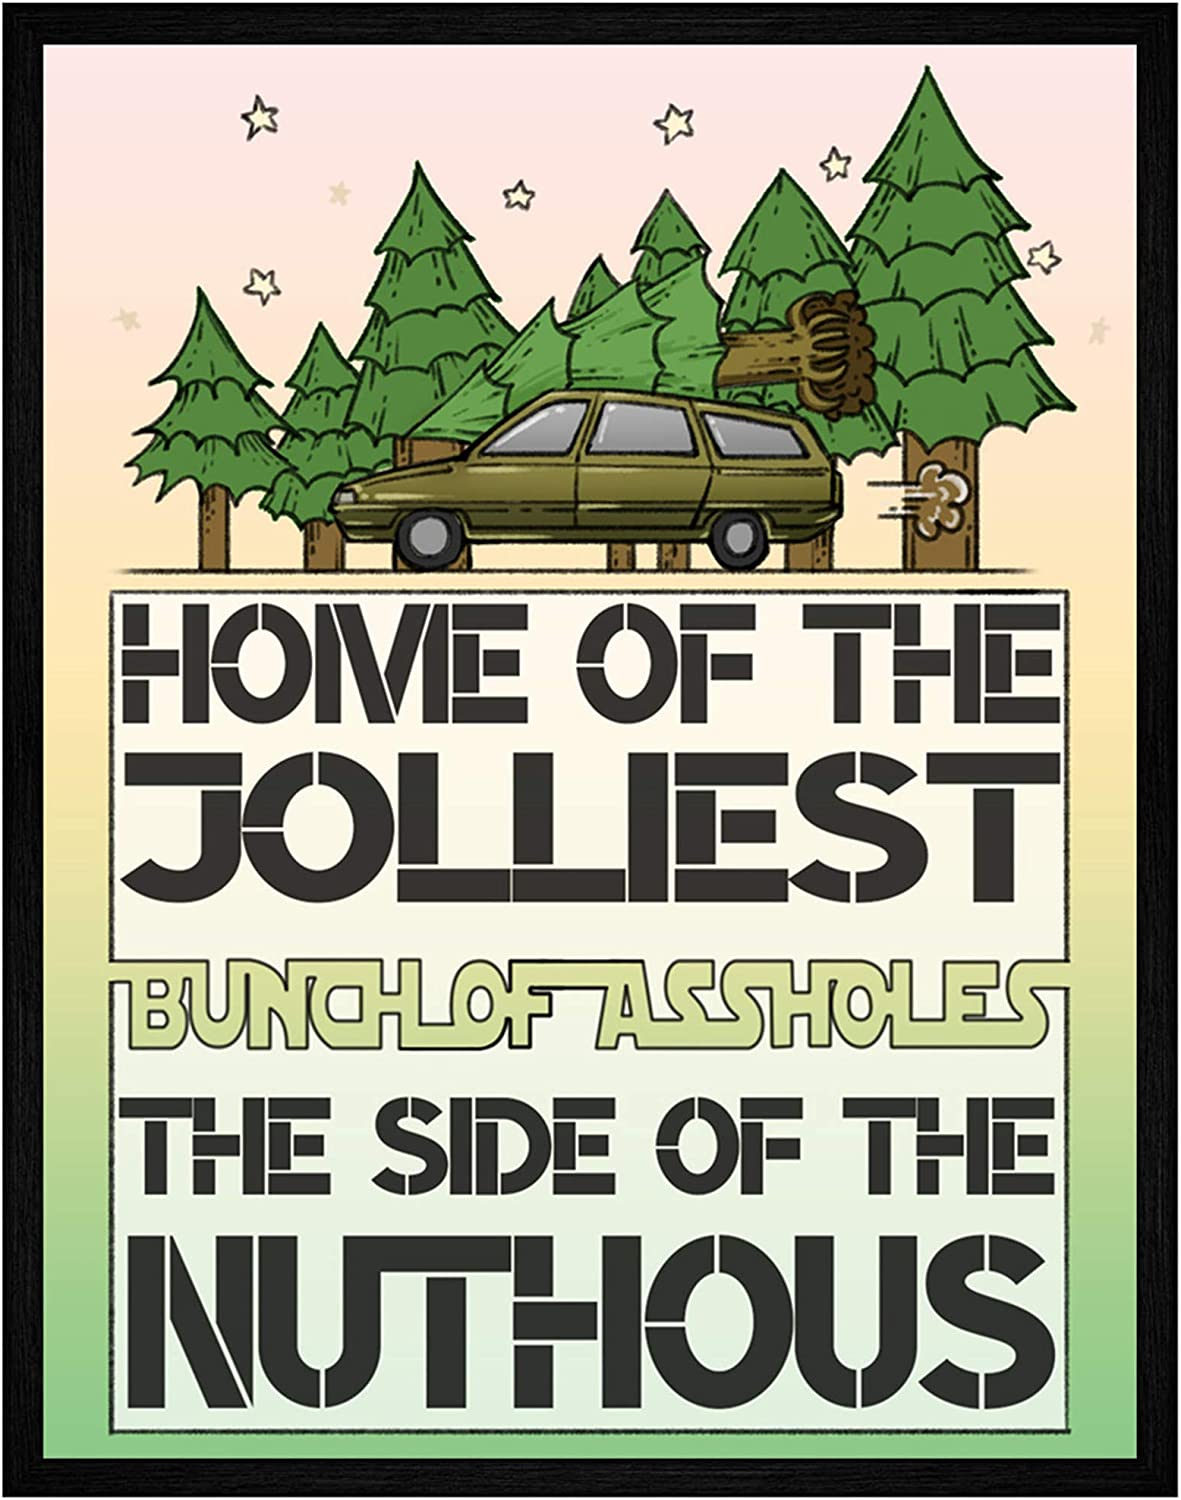 Home of the Jolliest Bunch Christmas Art Prints - 11x14 Inch Wall Art Prints Bathroom Home Christmas Decorations National Lampoon's Christmas Vacation - Unframed